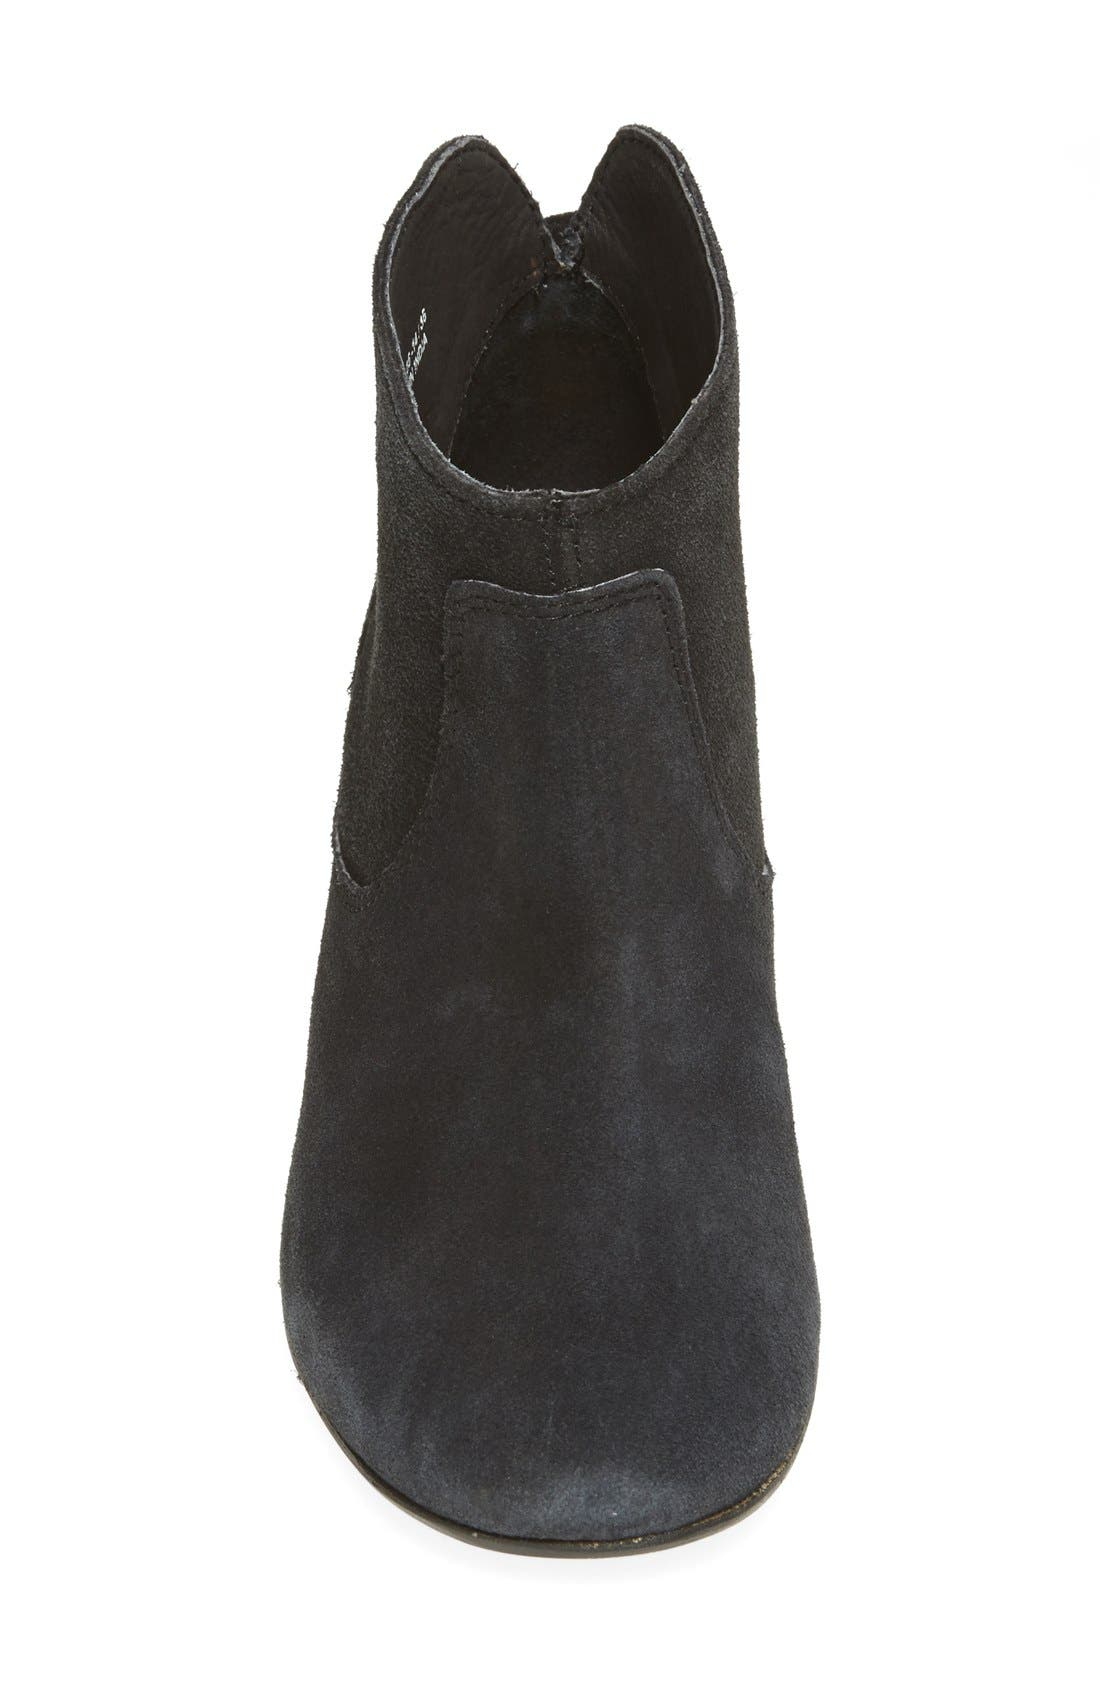 'Kiver' Suede Bootie,                             Alternate thumbnail 2, color,                             001